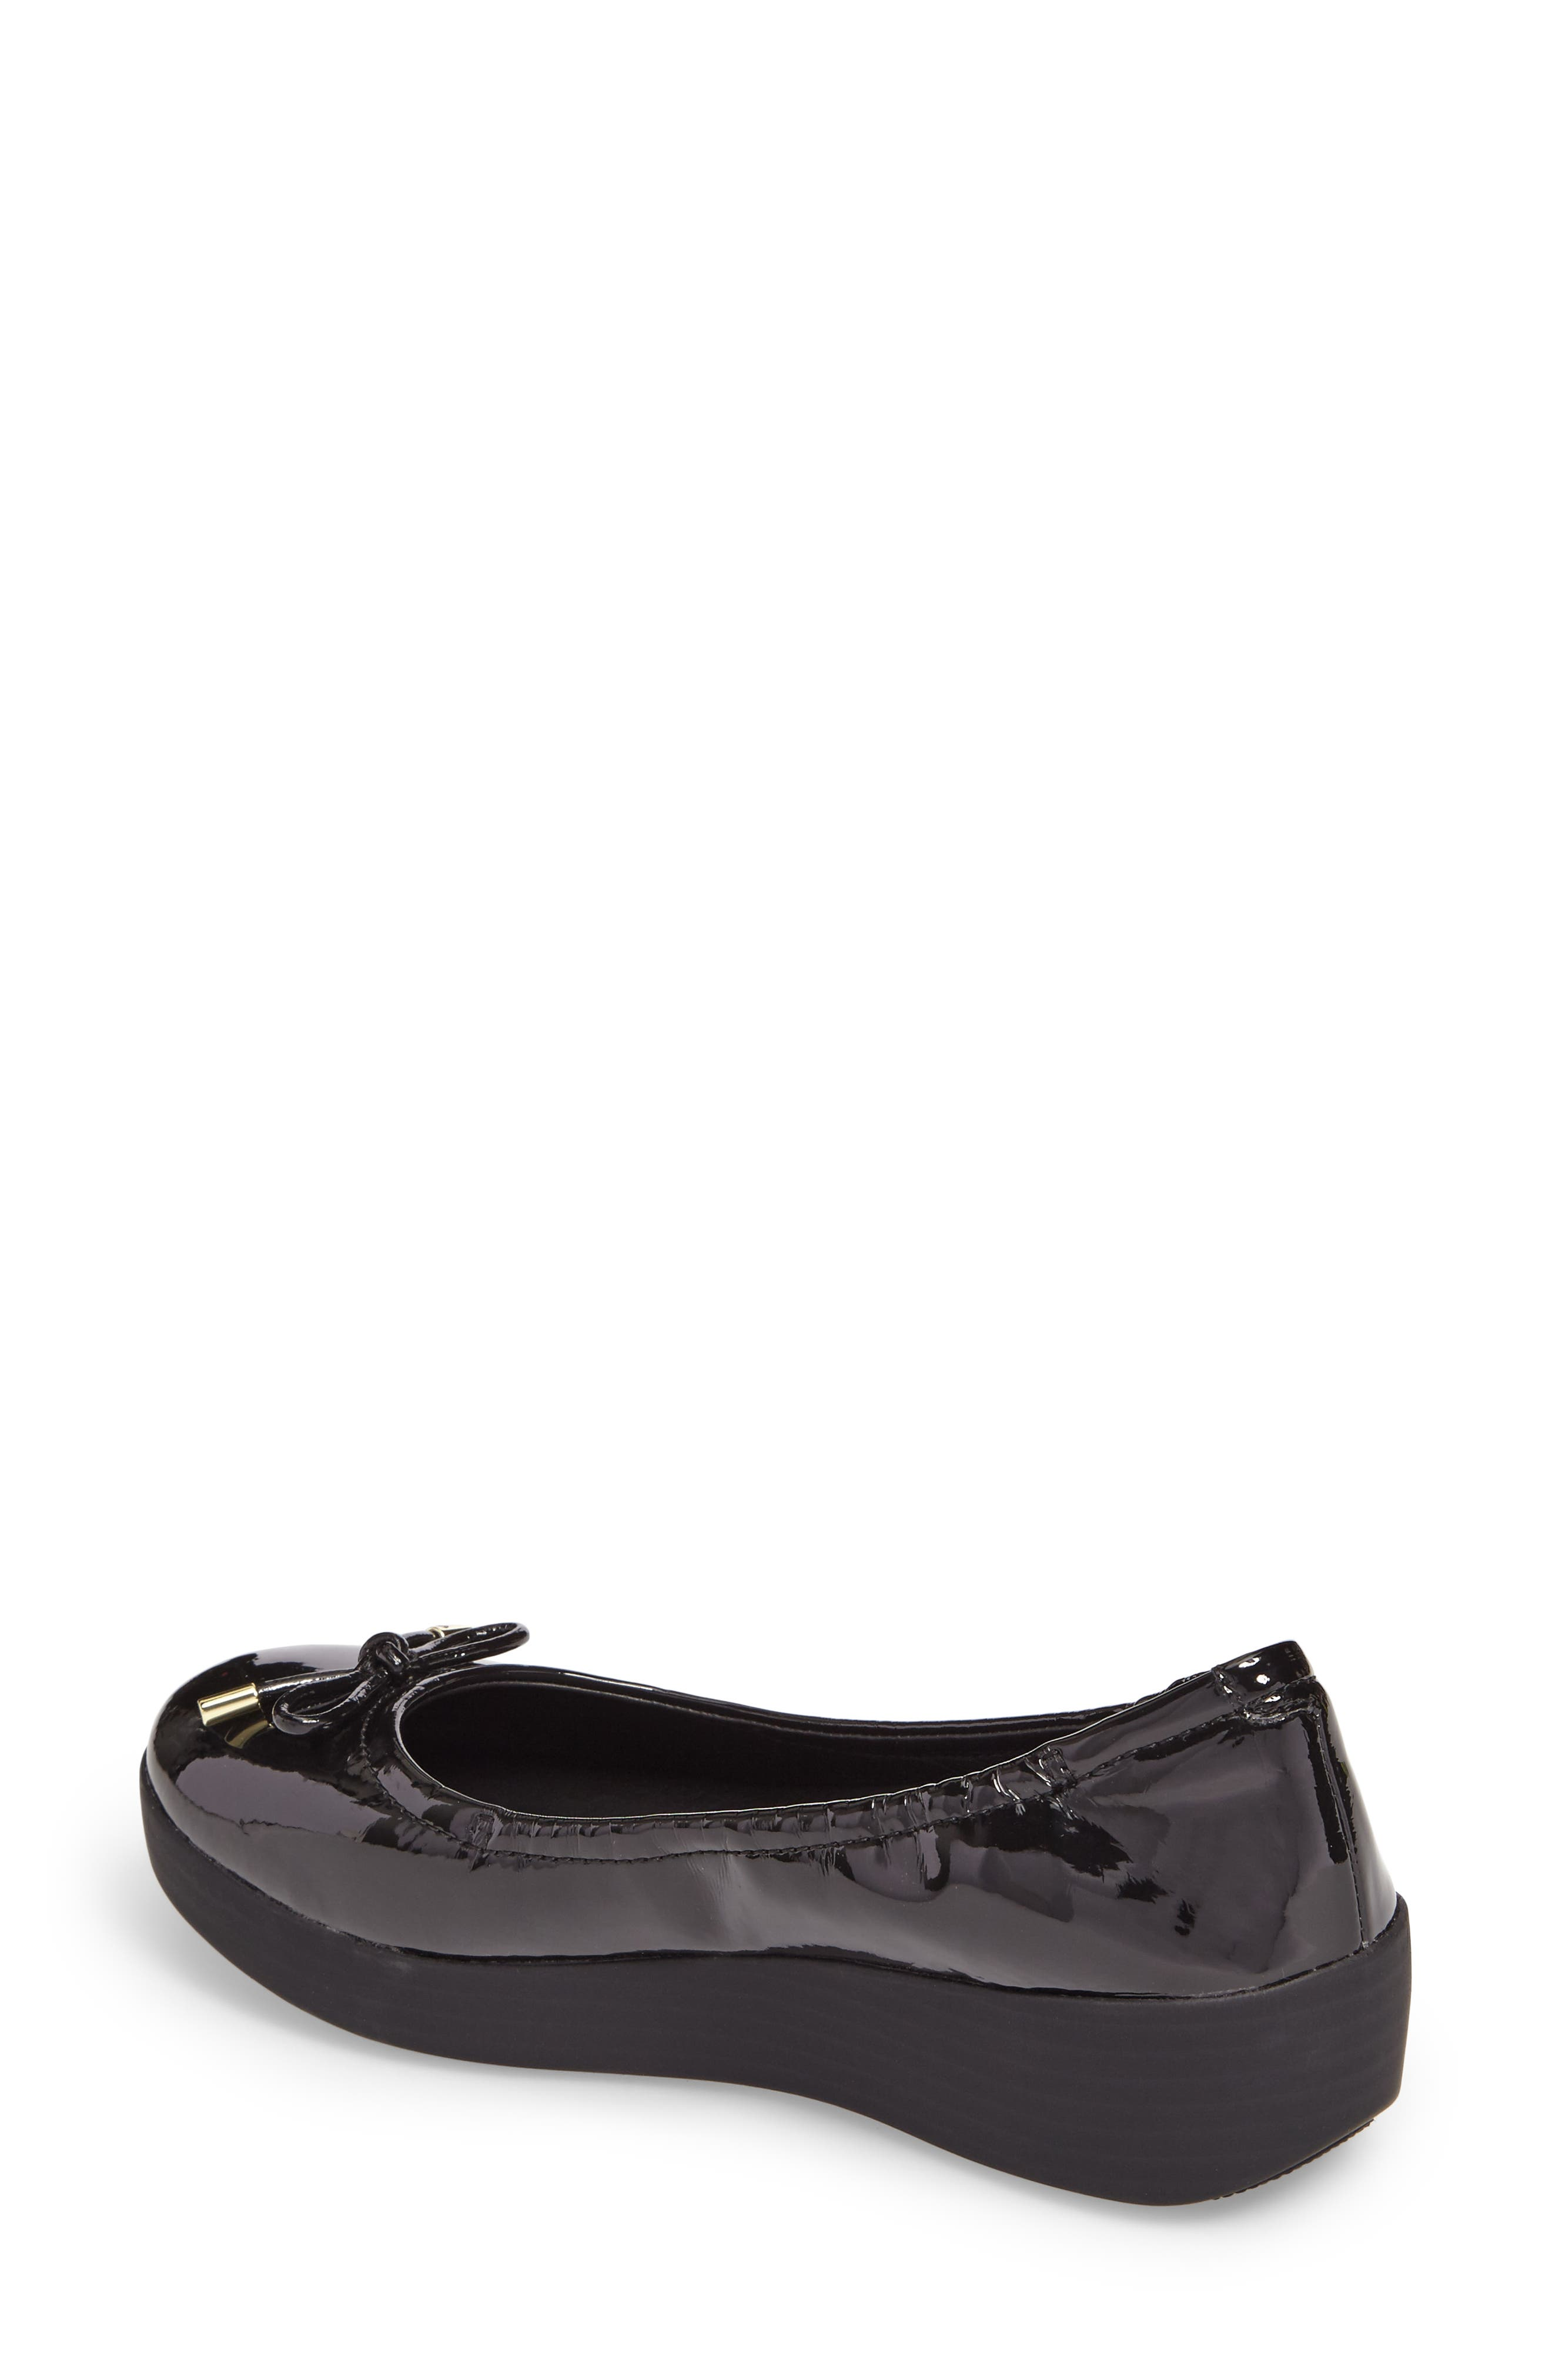 SuperBendy<sup>™</sup> Ballet Flat,                             Alternate thumbnail 2, color,                             Black Faux Patent